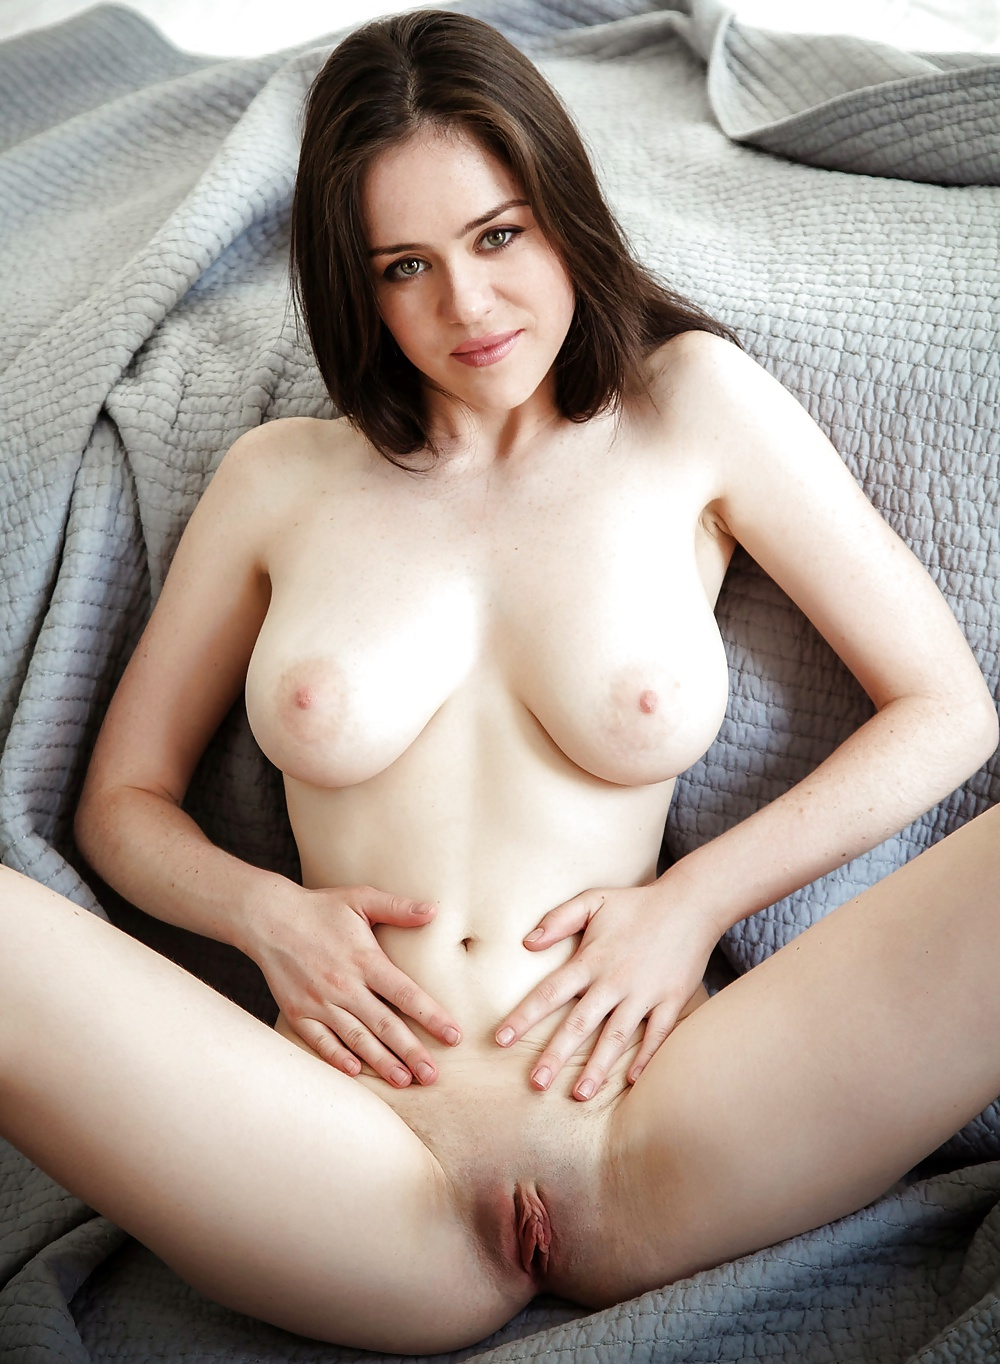 Women with perfect boobs